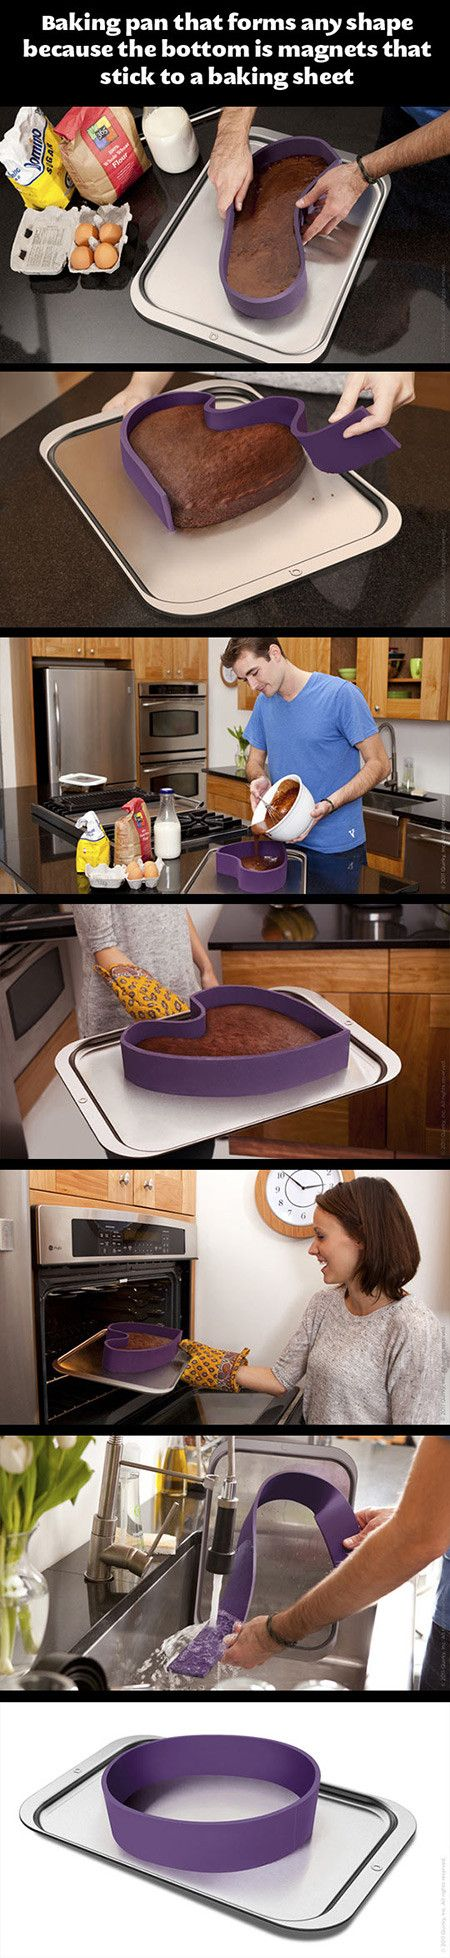 Funny Pictures About Clever Baking Pan With A Twist. Oh, And Cool Pics  About Clever Baking Pan With A Twist. Also, Clever Baking Pan With A Twist  Photos.